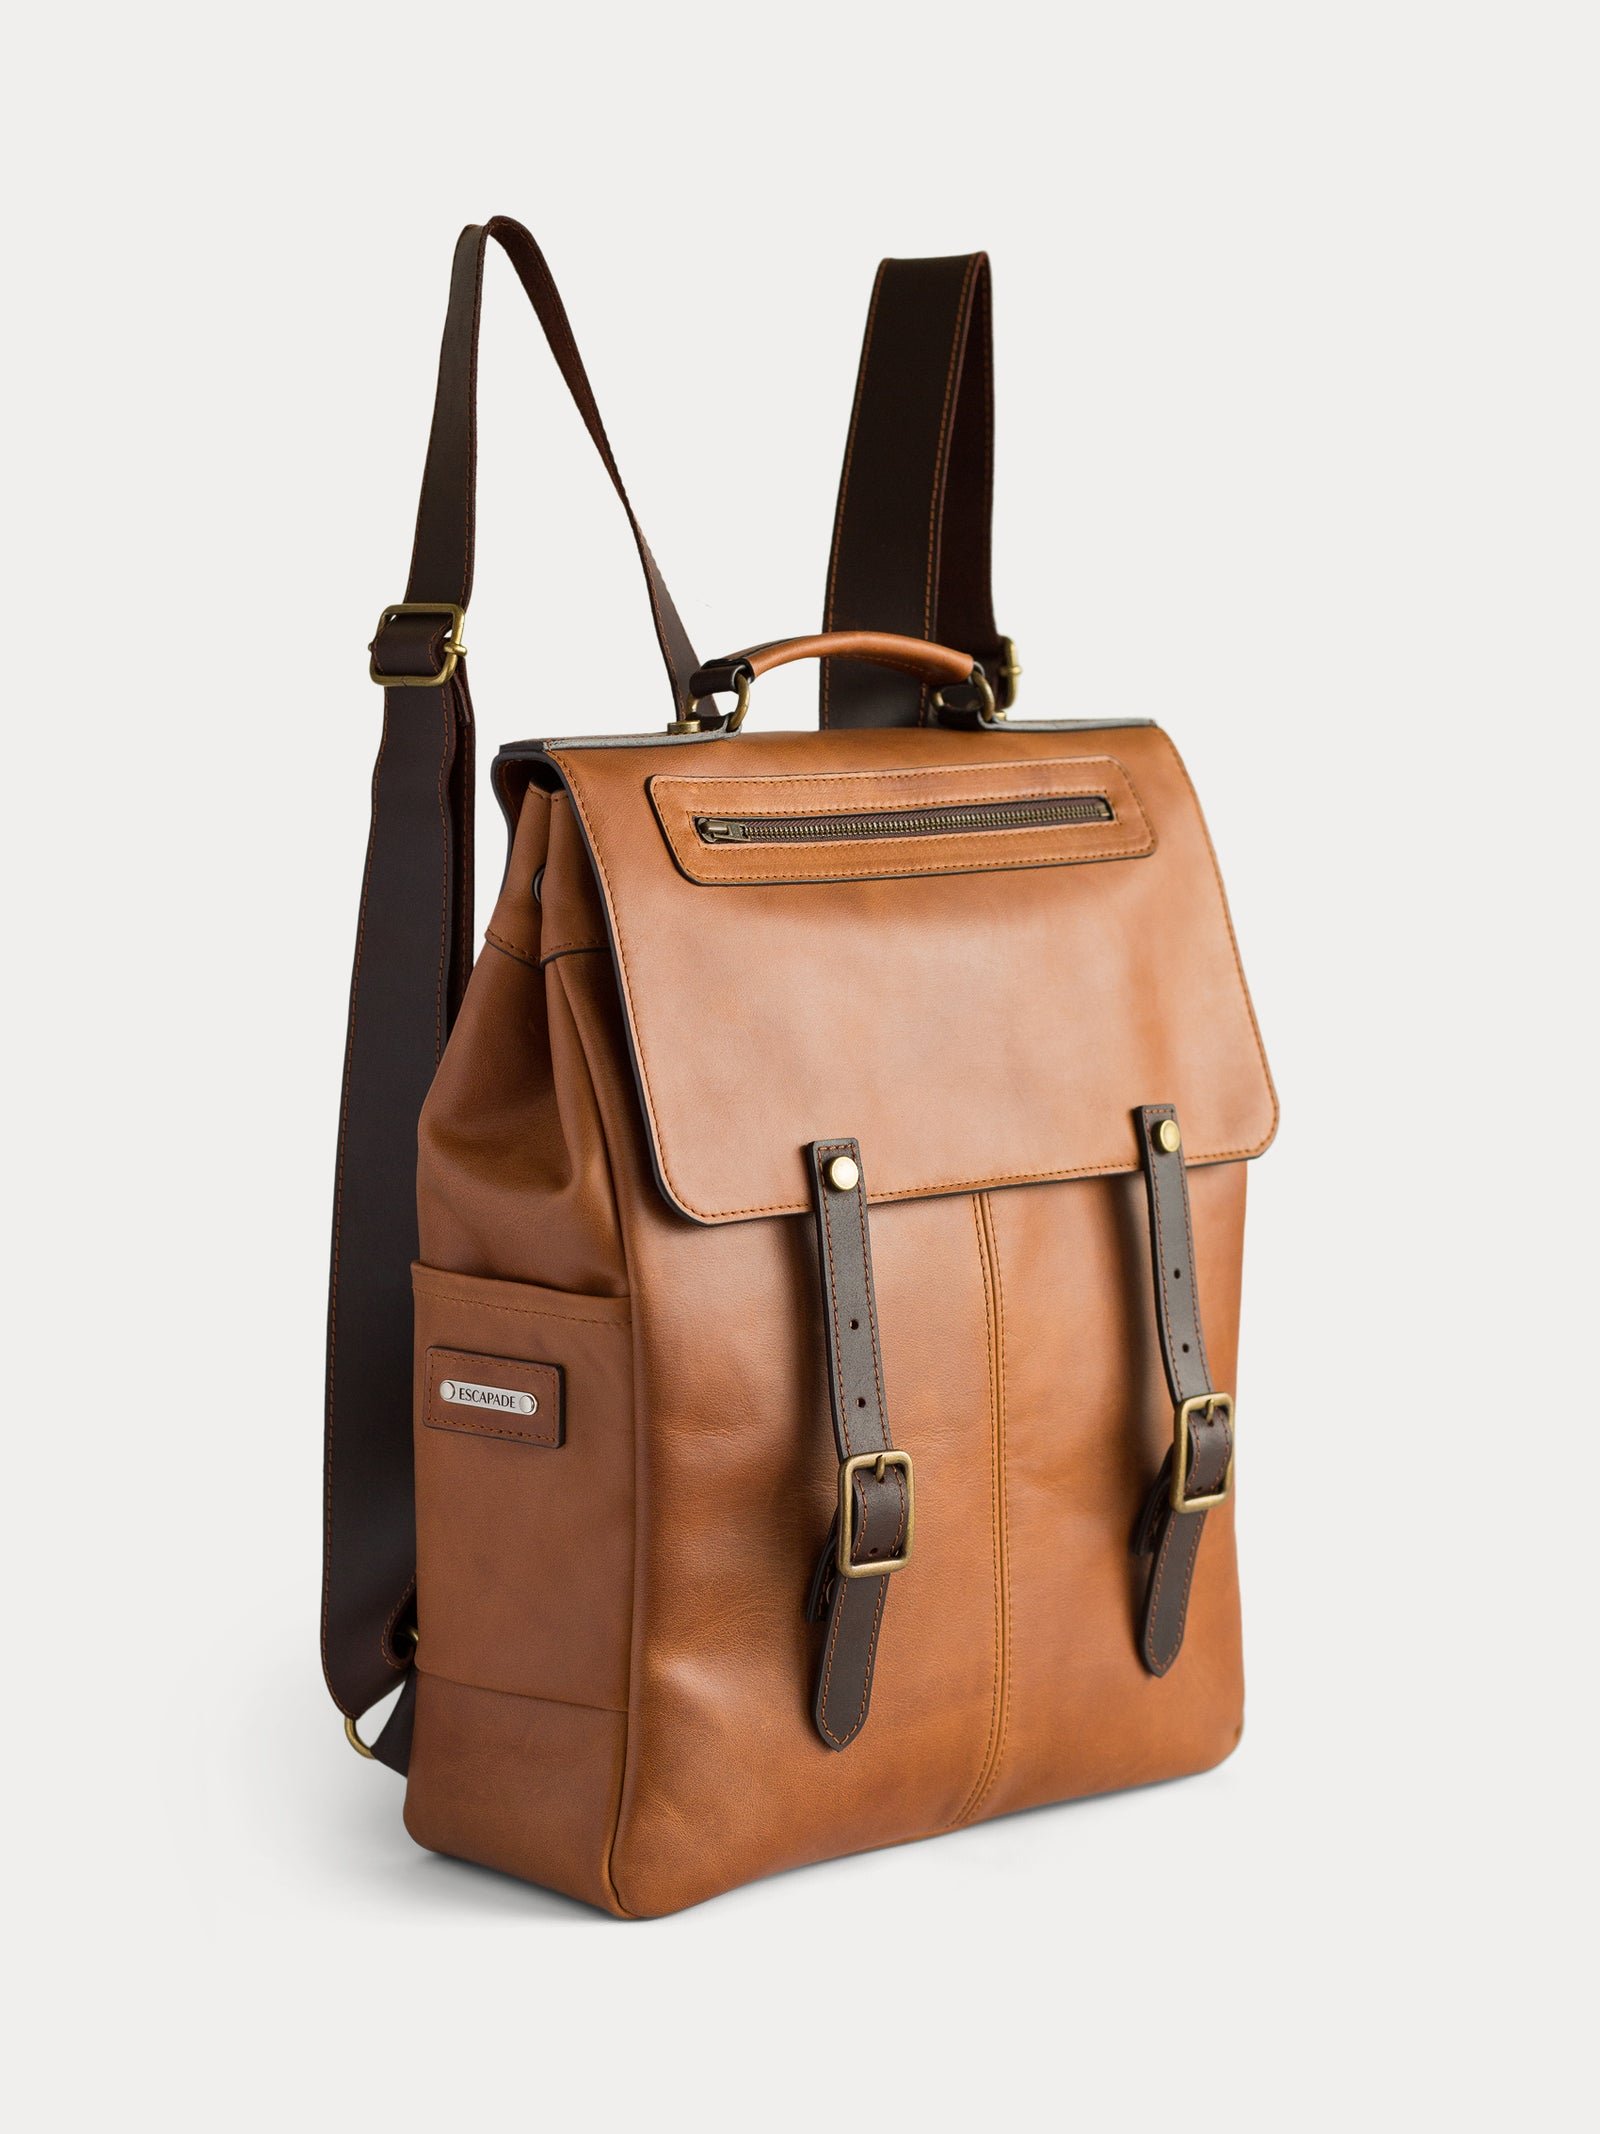 handcrafted camel leather backpack for men